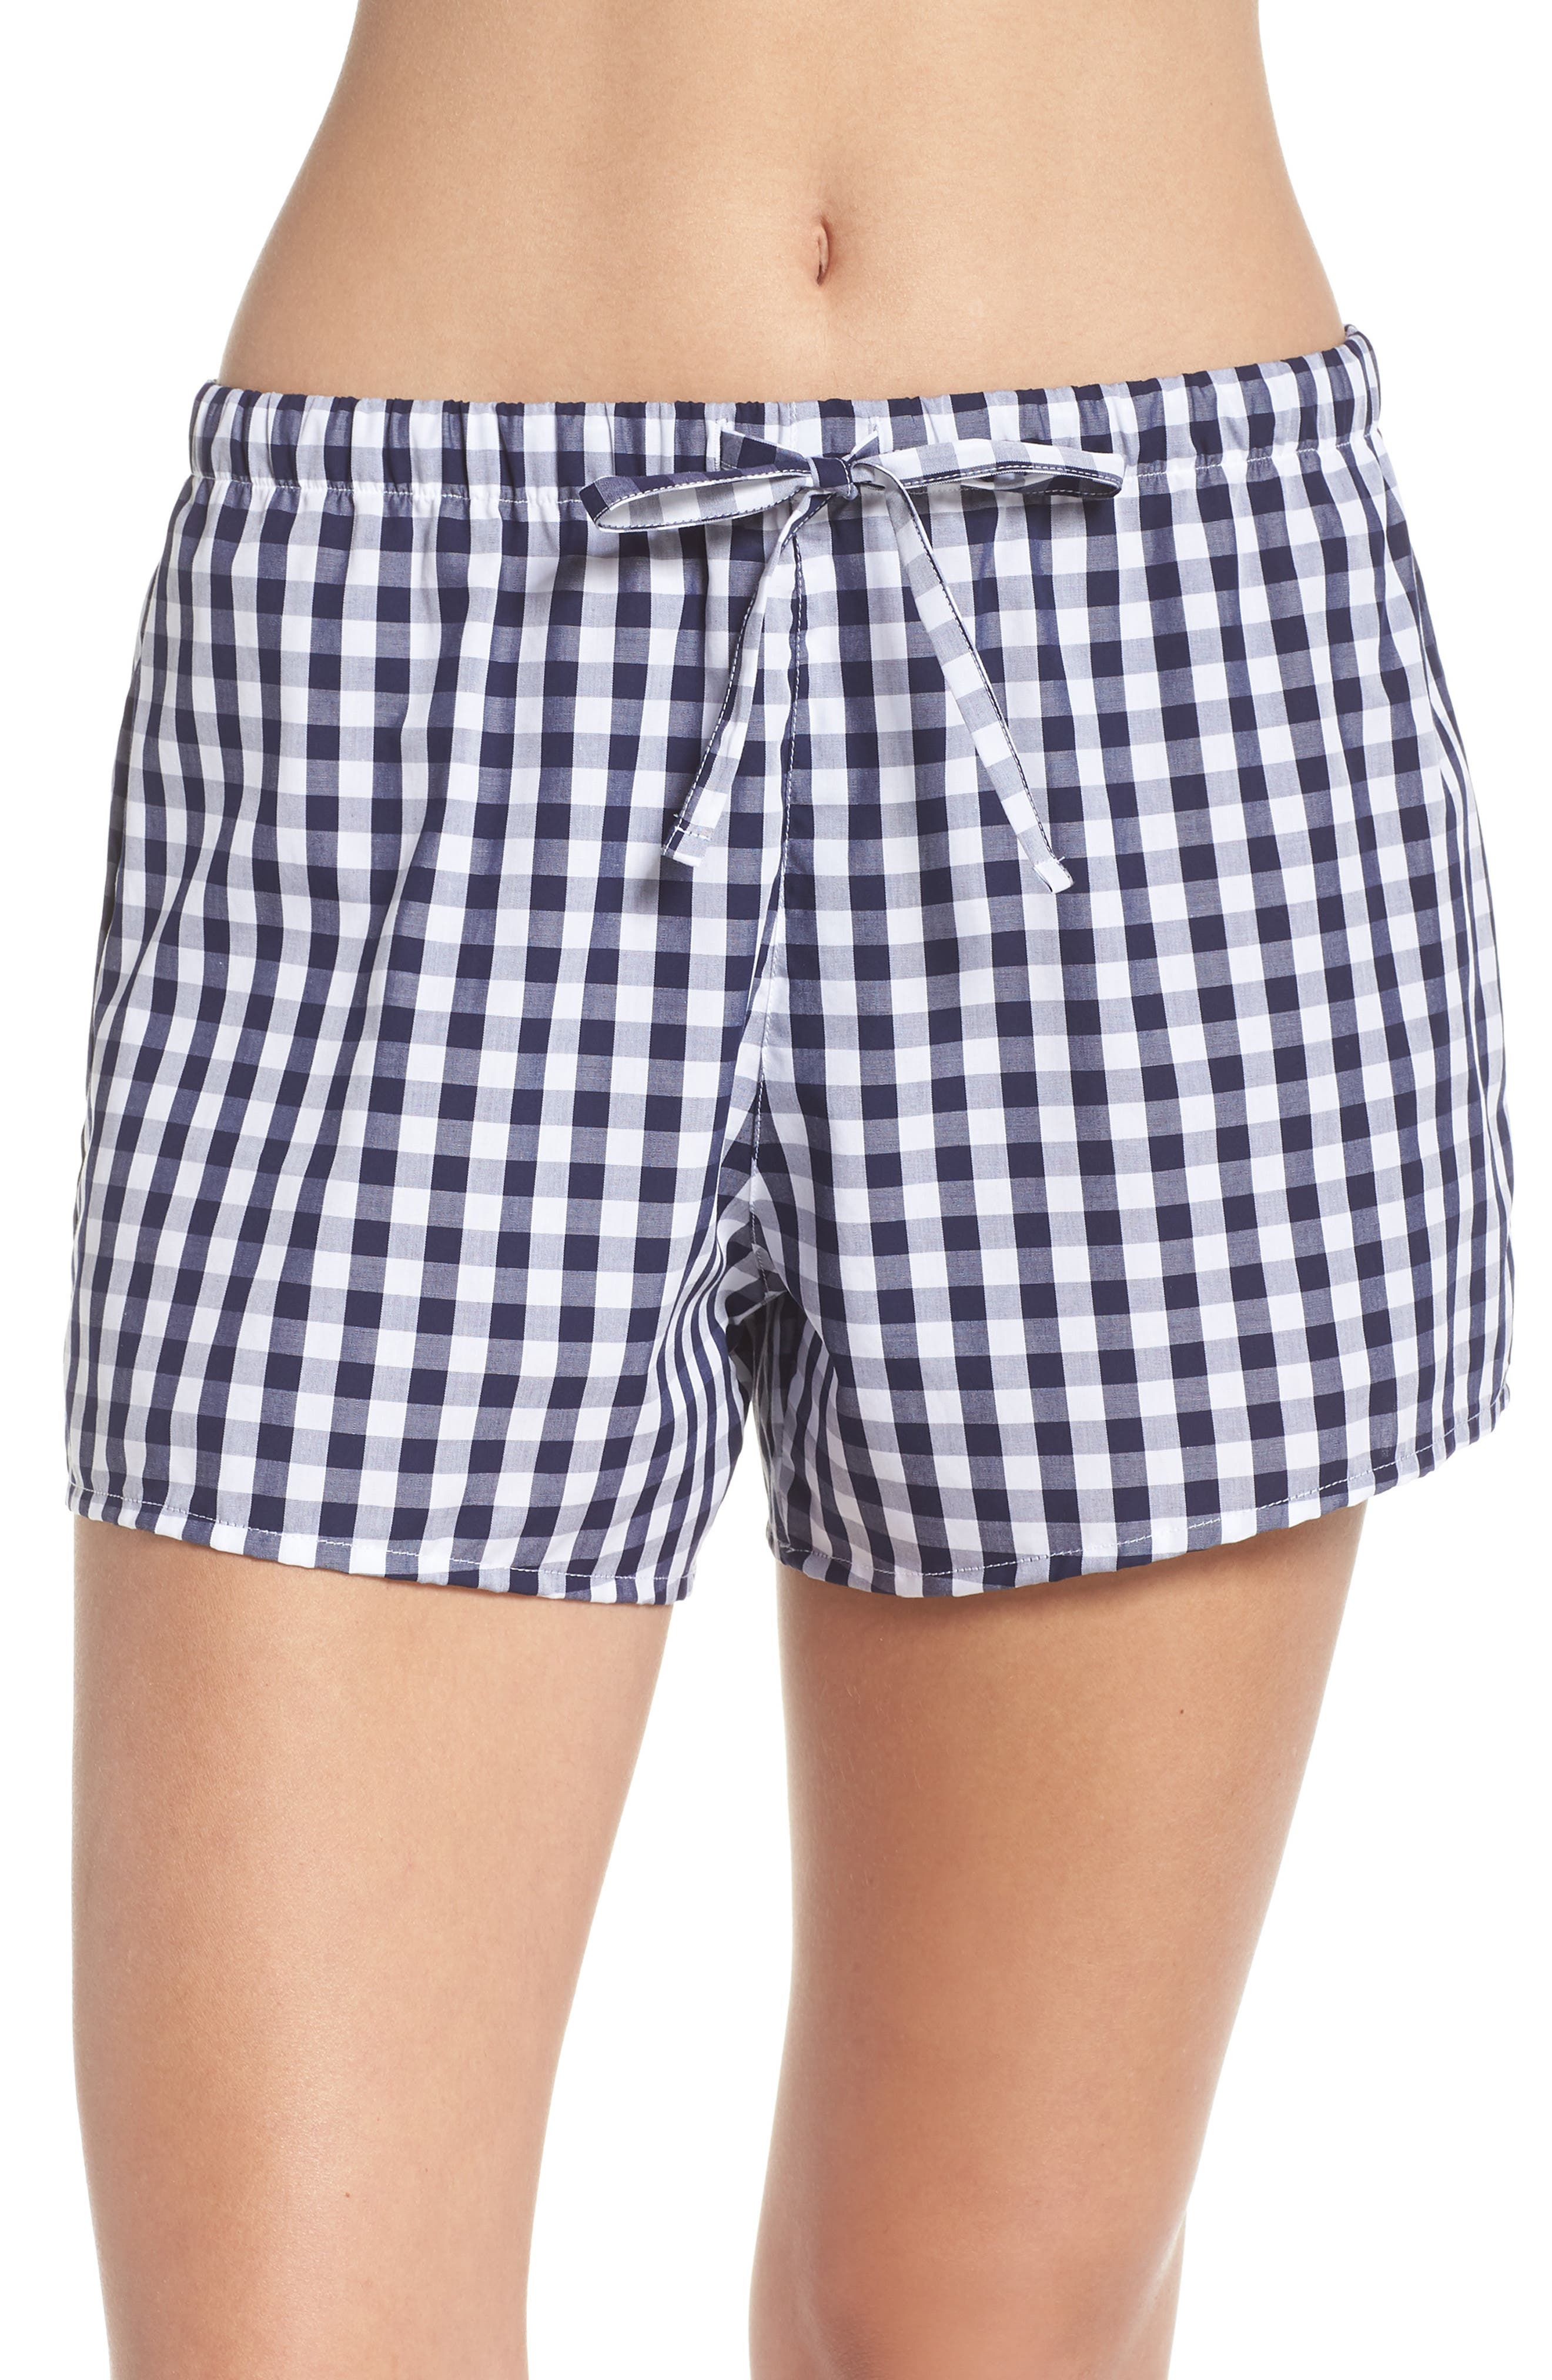 Paloma Women's Pajama Shorts,                             Alternate thumbnail 2, color,                             LARGE GINGHAM BLUE